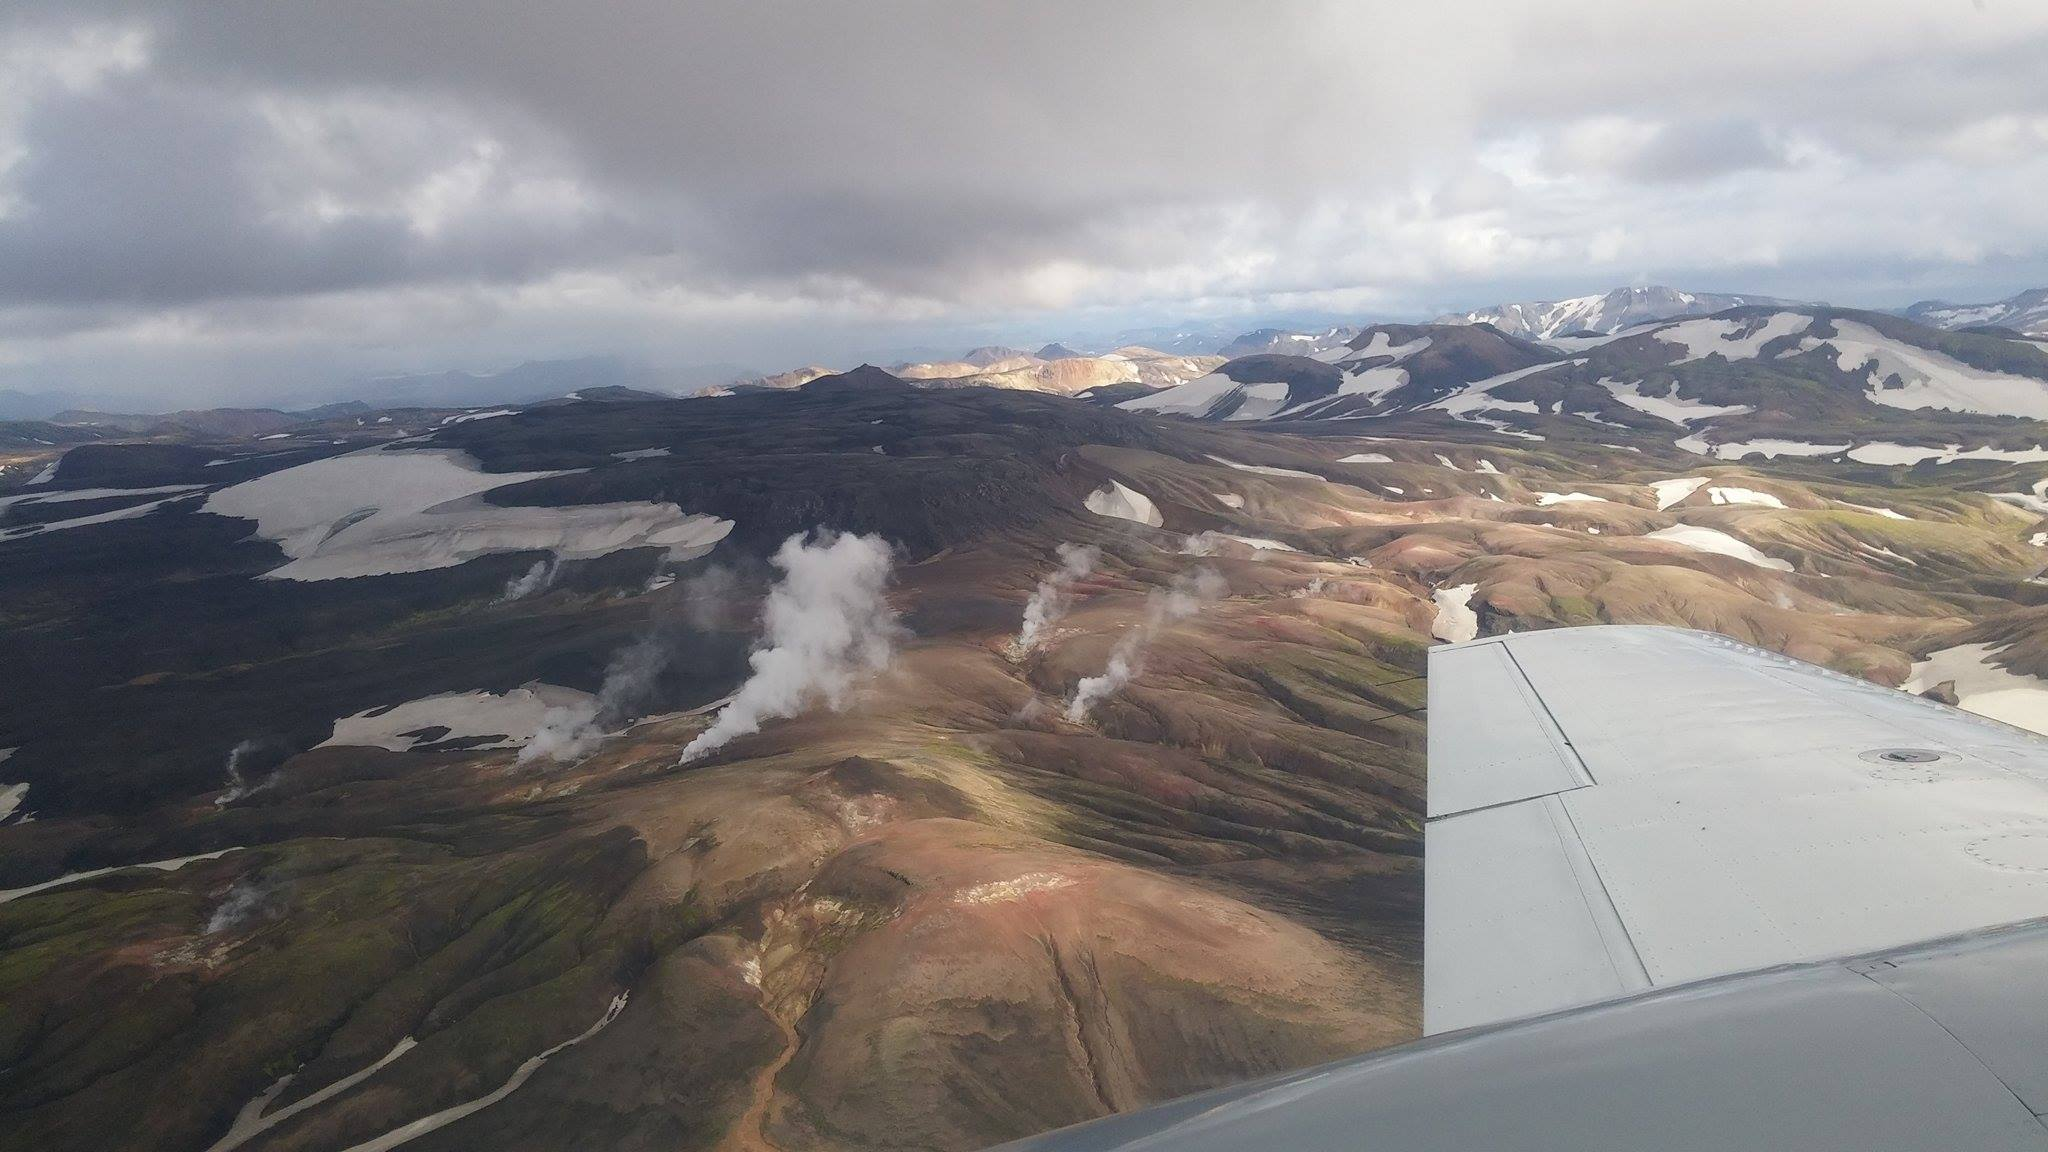 The Highlands of Iceland are stock-full of geothermal areas and rhyolite mountains.